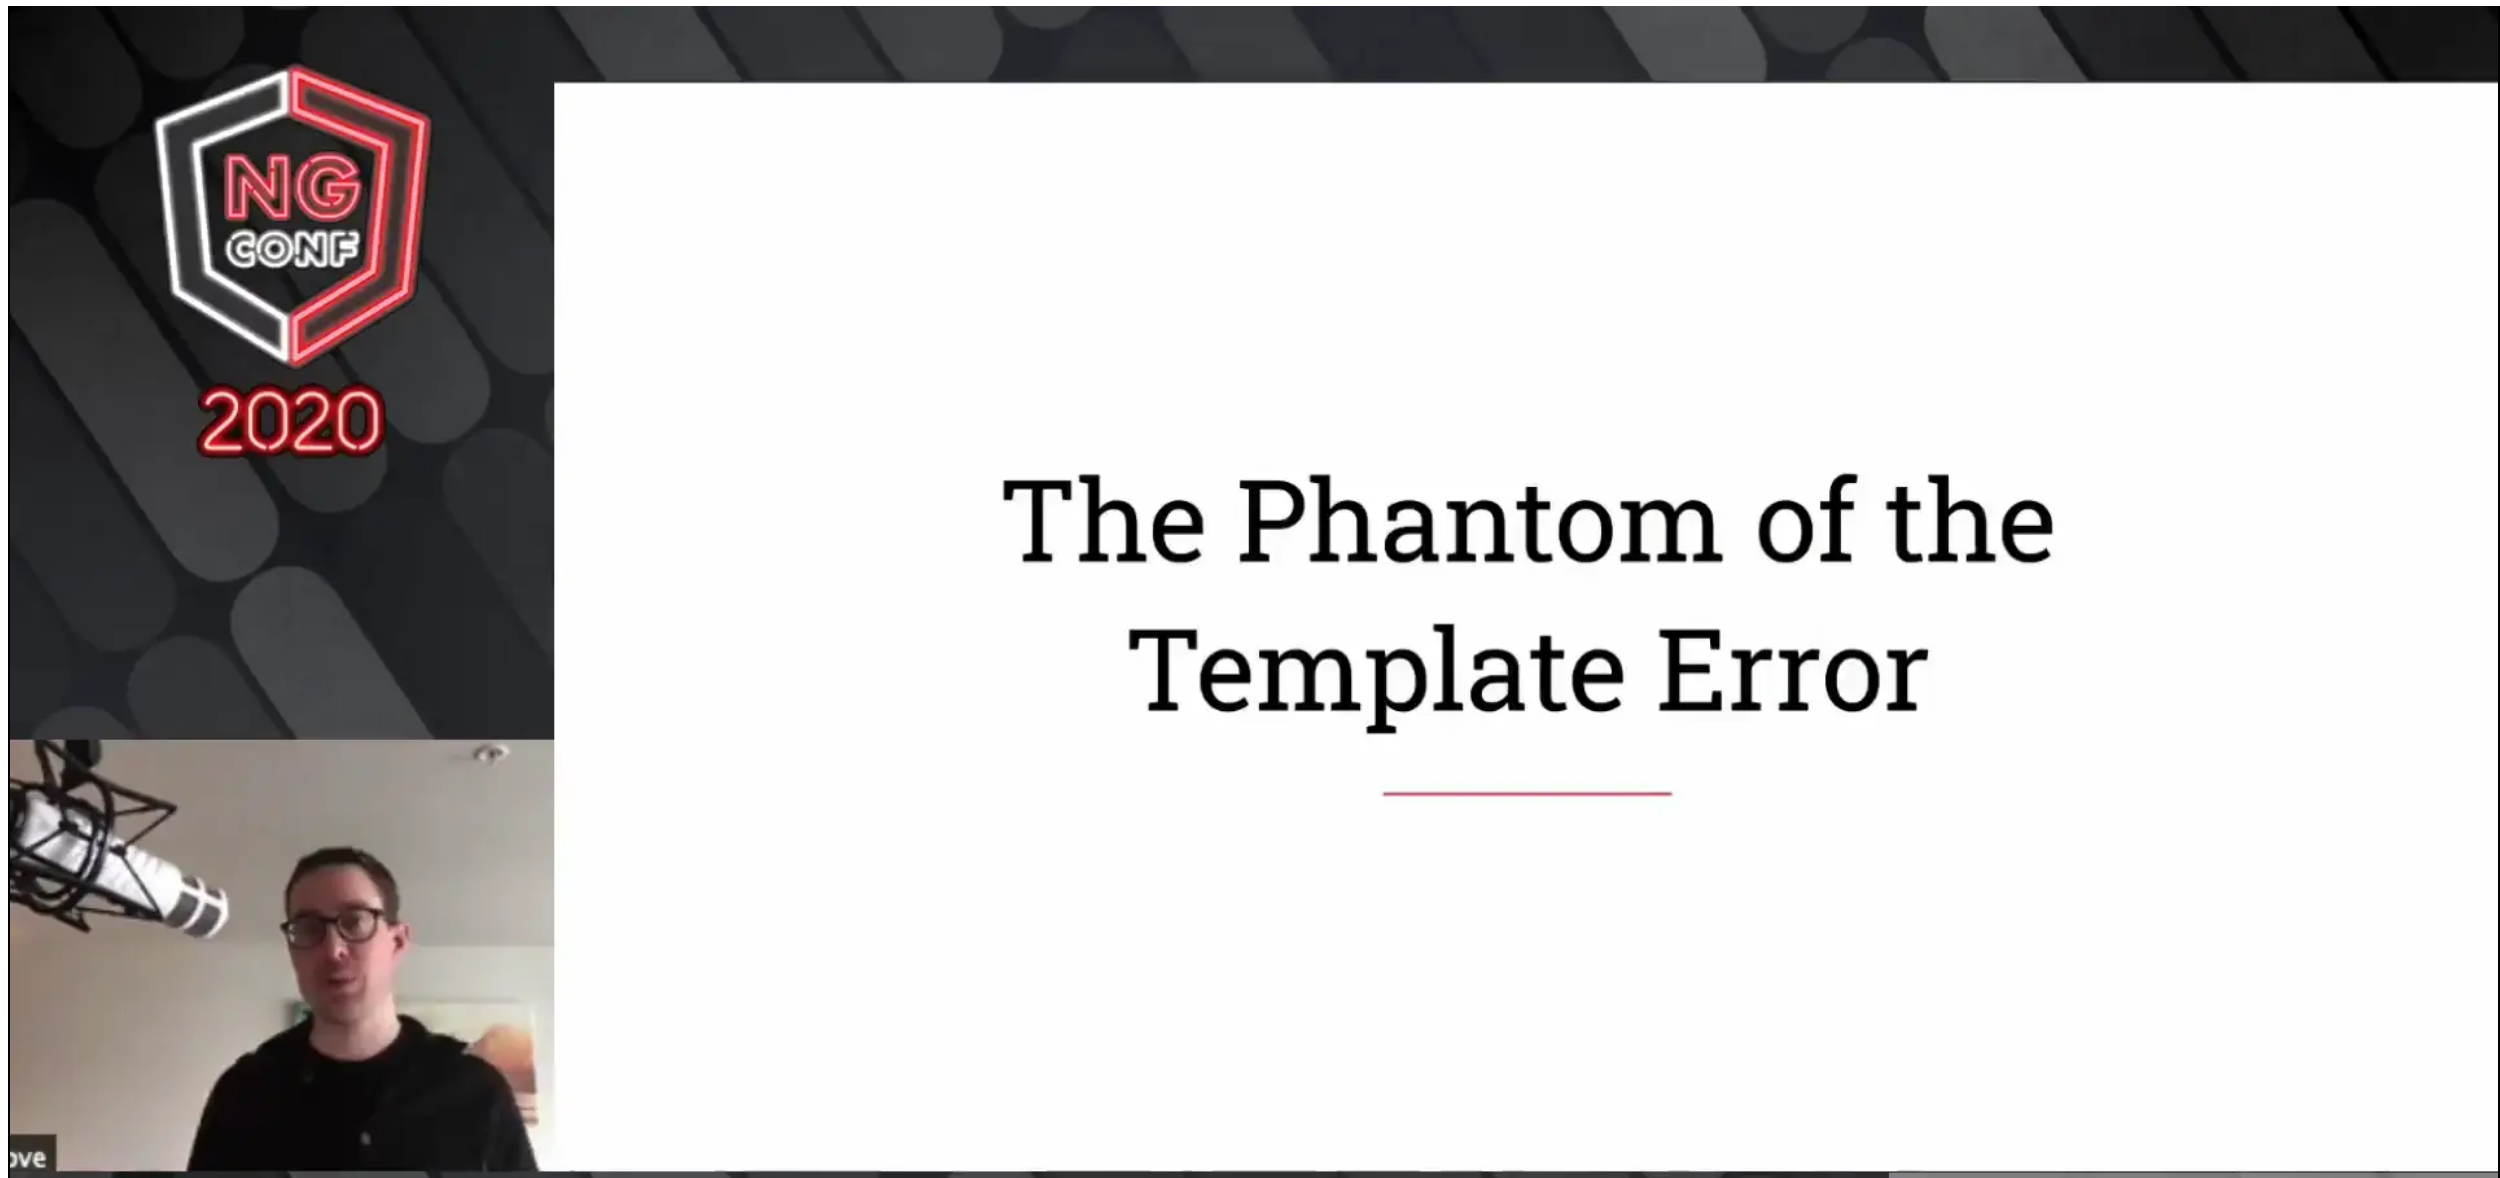 The Phantom of the Template Error